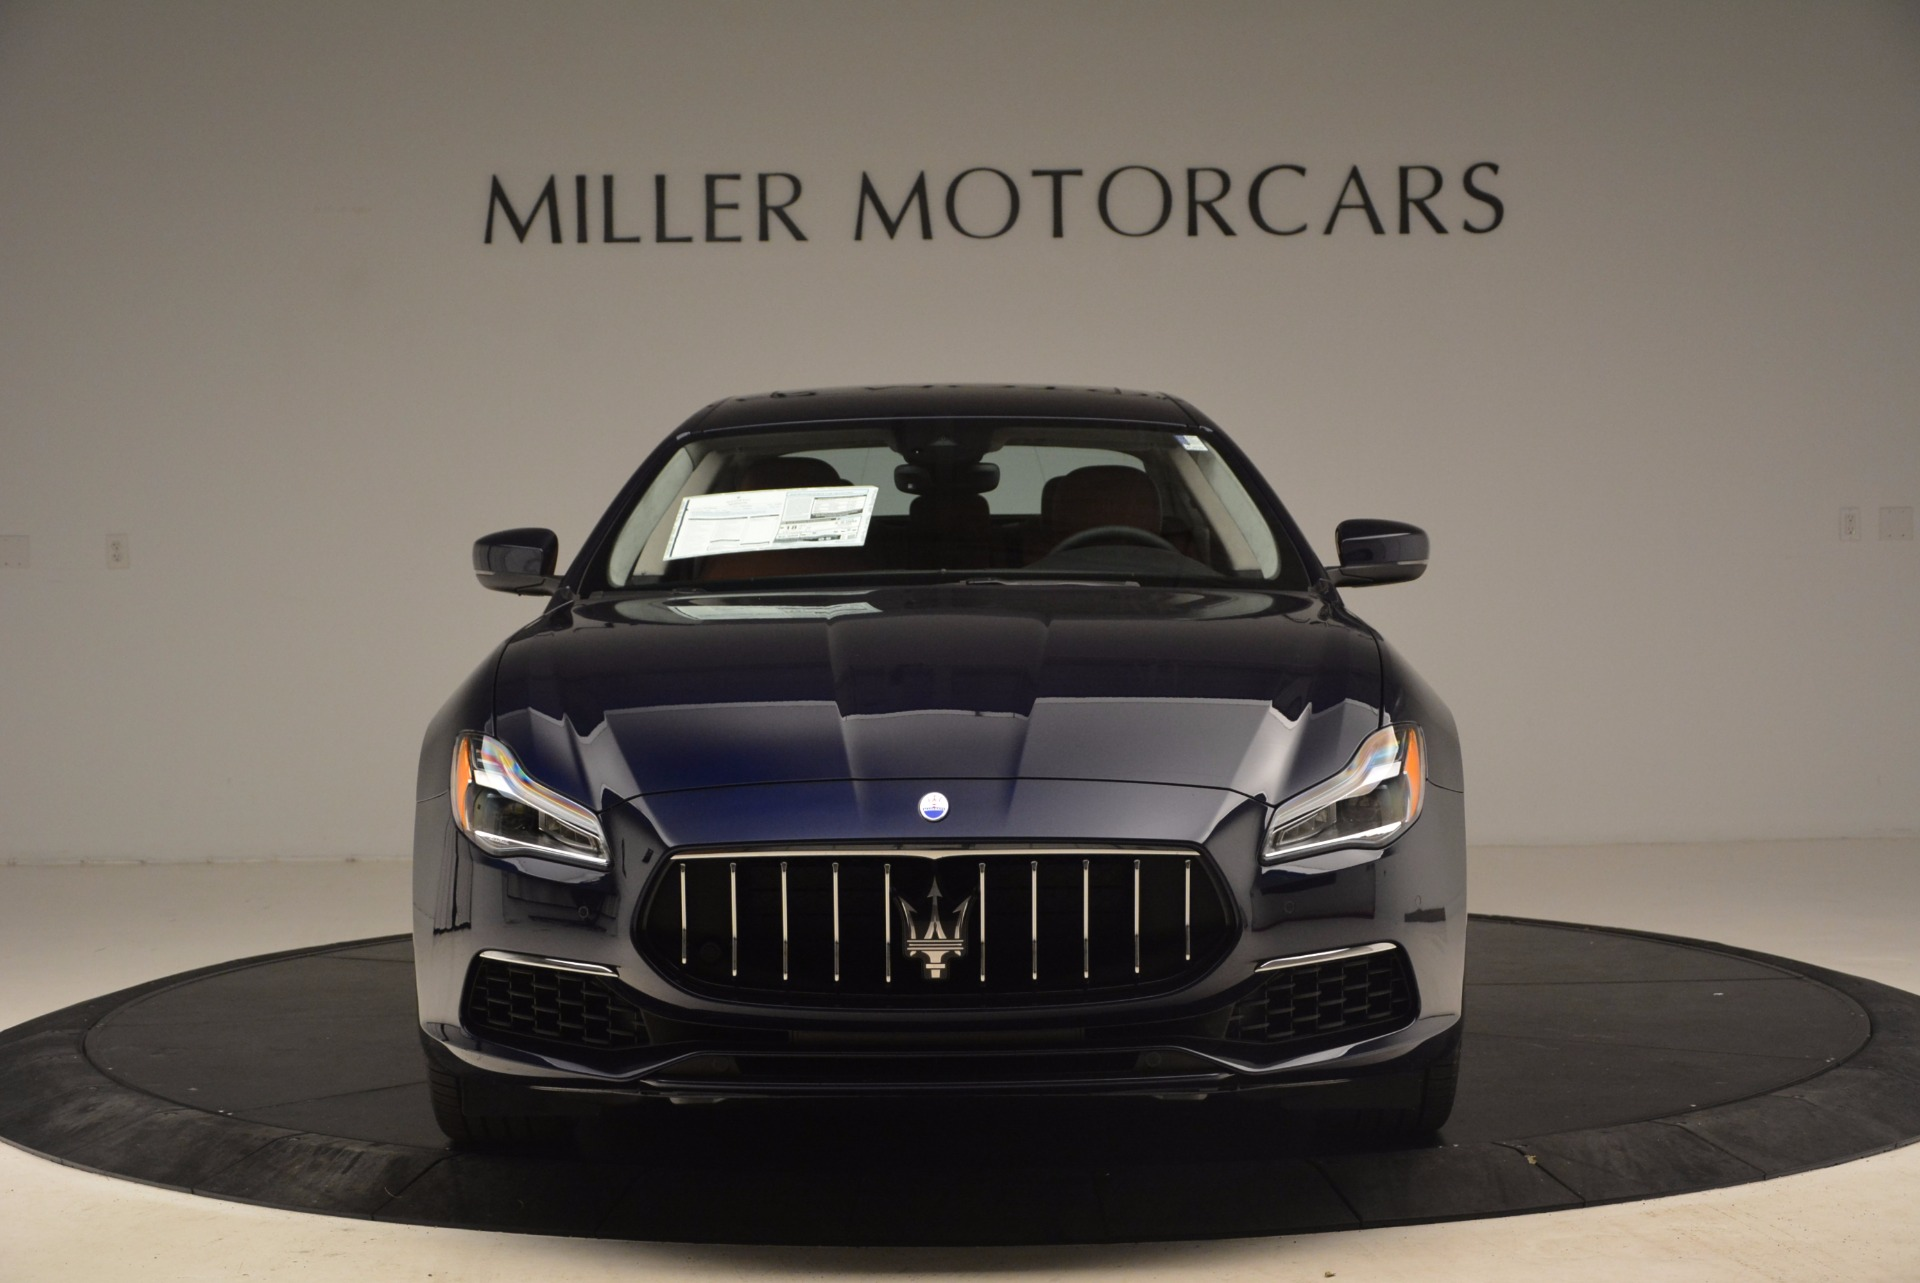 Used 2018 Maserati Quattroporte S Q4 GranLusso For Sale In Greenwich, CT 1572_p12